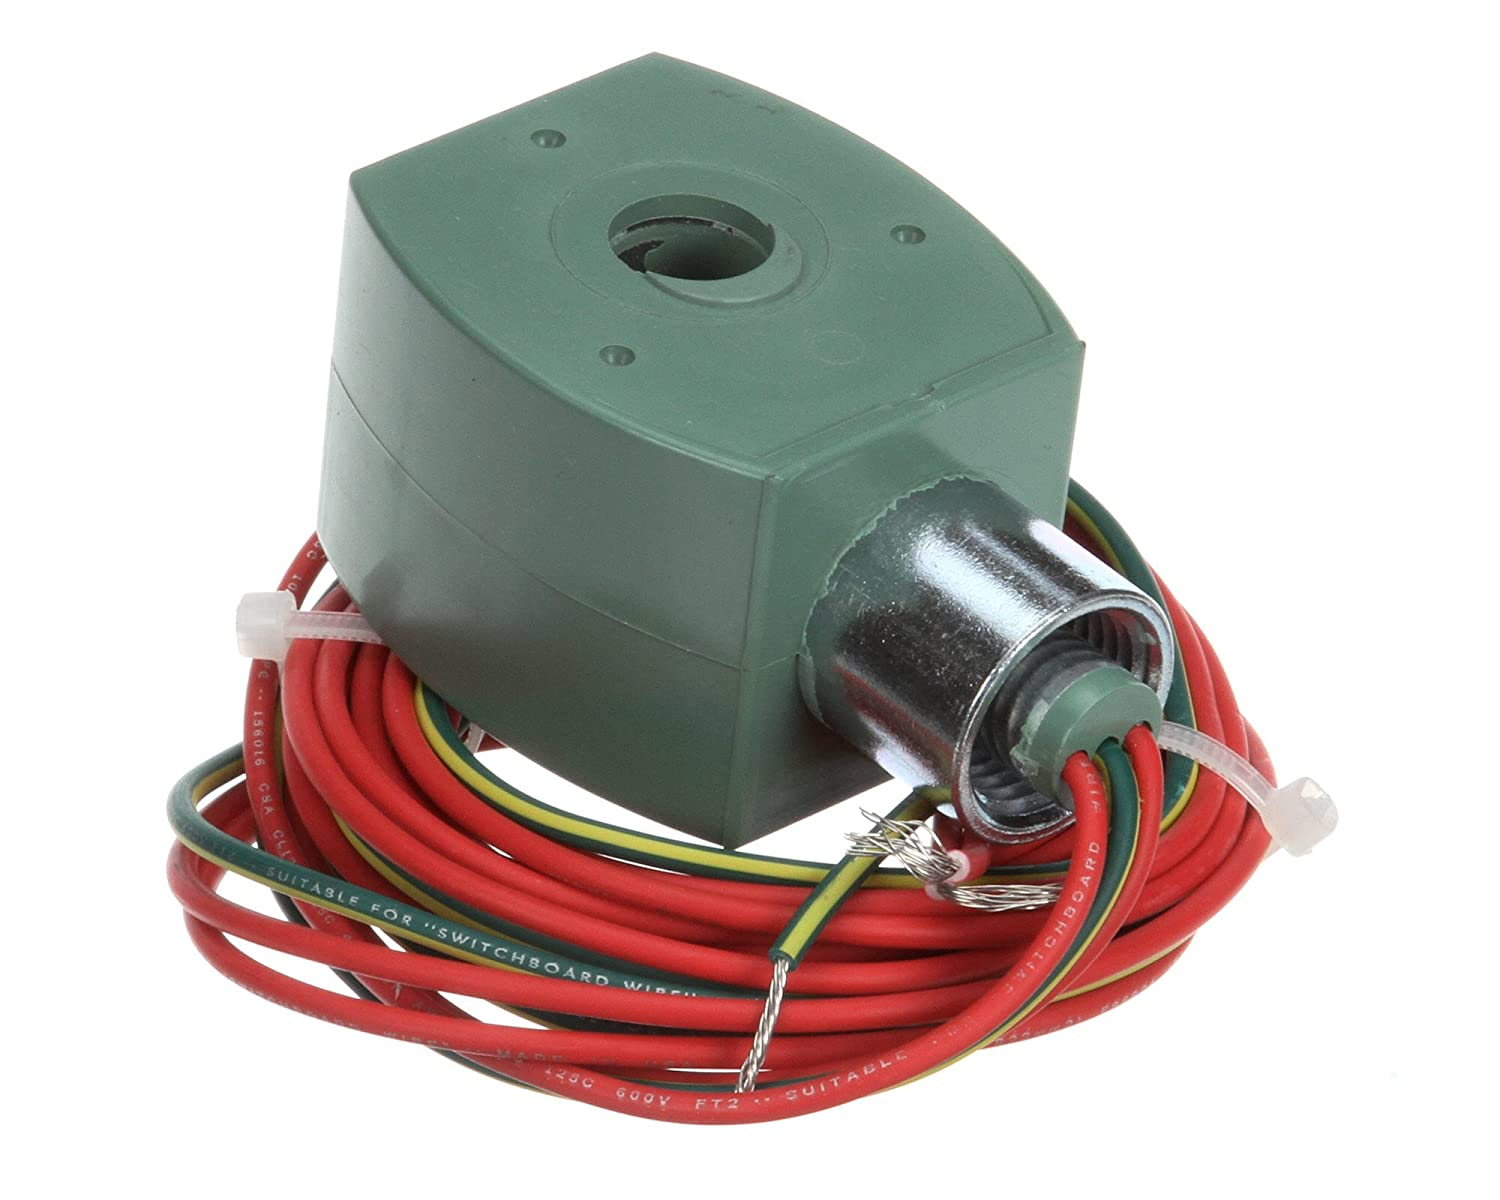 """Champion - Moyer Diebel 110120 Coil-Replacement Steam Saco, 120V, 9"""" Height, 6"""" Width, 5"""" Length 71k640O1jFL._SL1500_"""